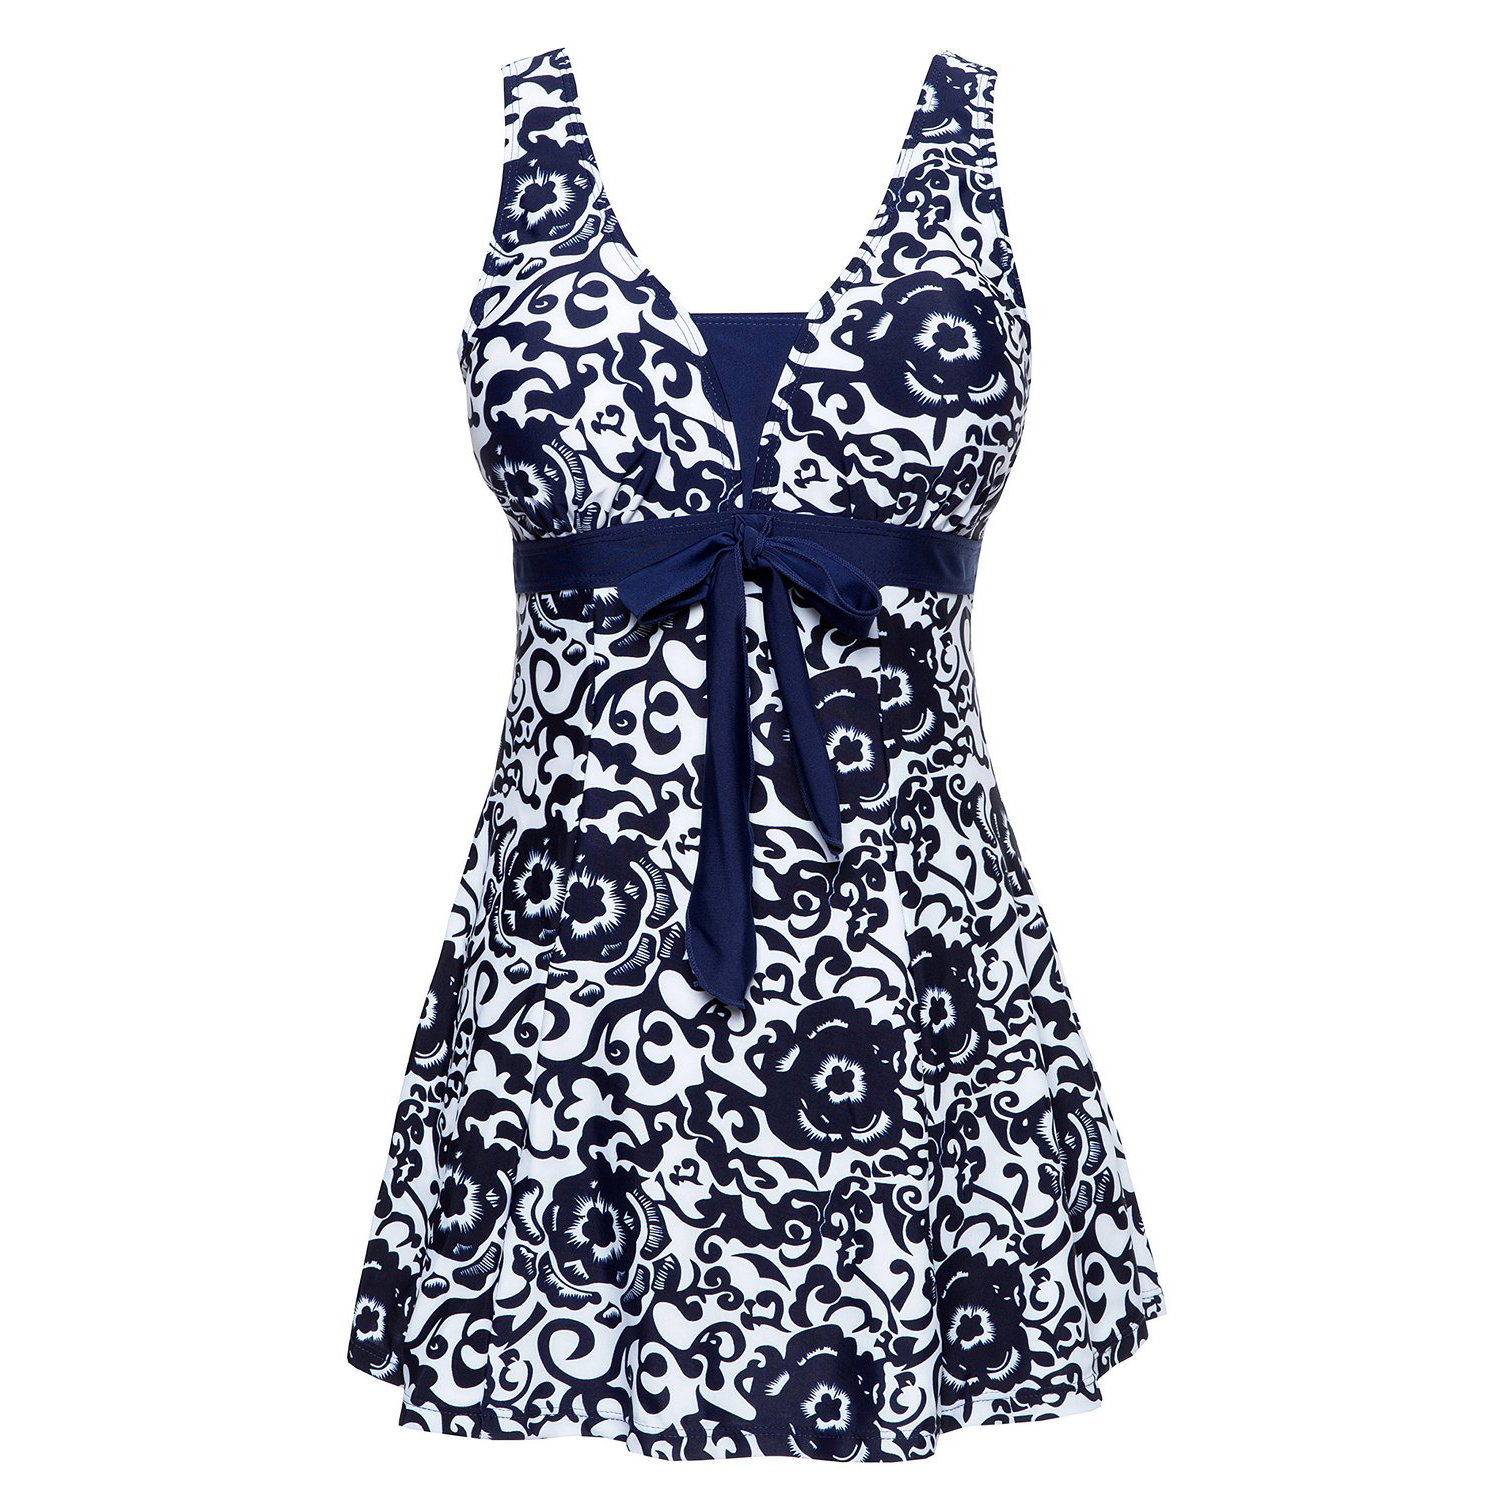 Plus Size Swimwear Female Polka Print One Piece Swimsuit Women Vintage Bathing One-Piece Suits Retro Large Size Swimsuit plus size zigzag backless one piece swimsuit